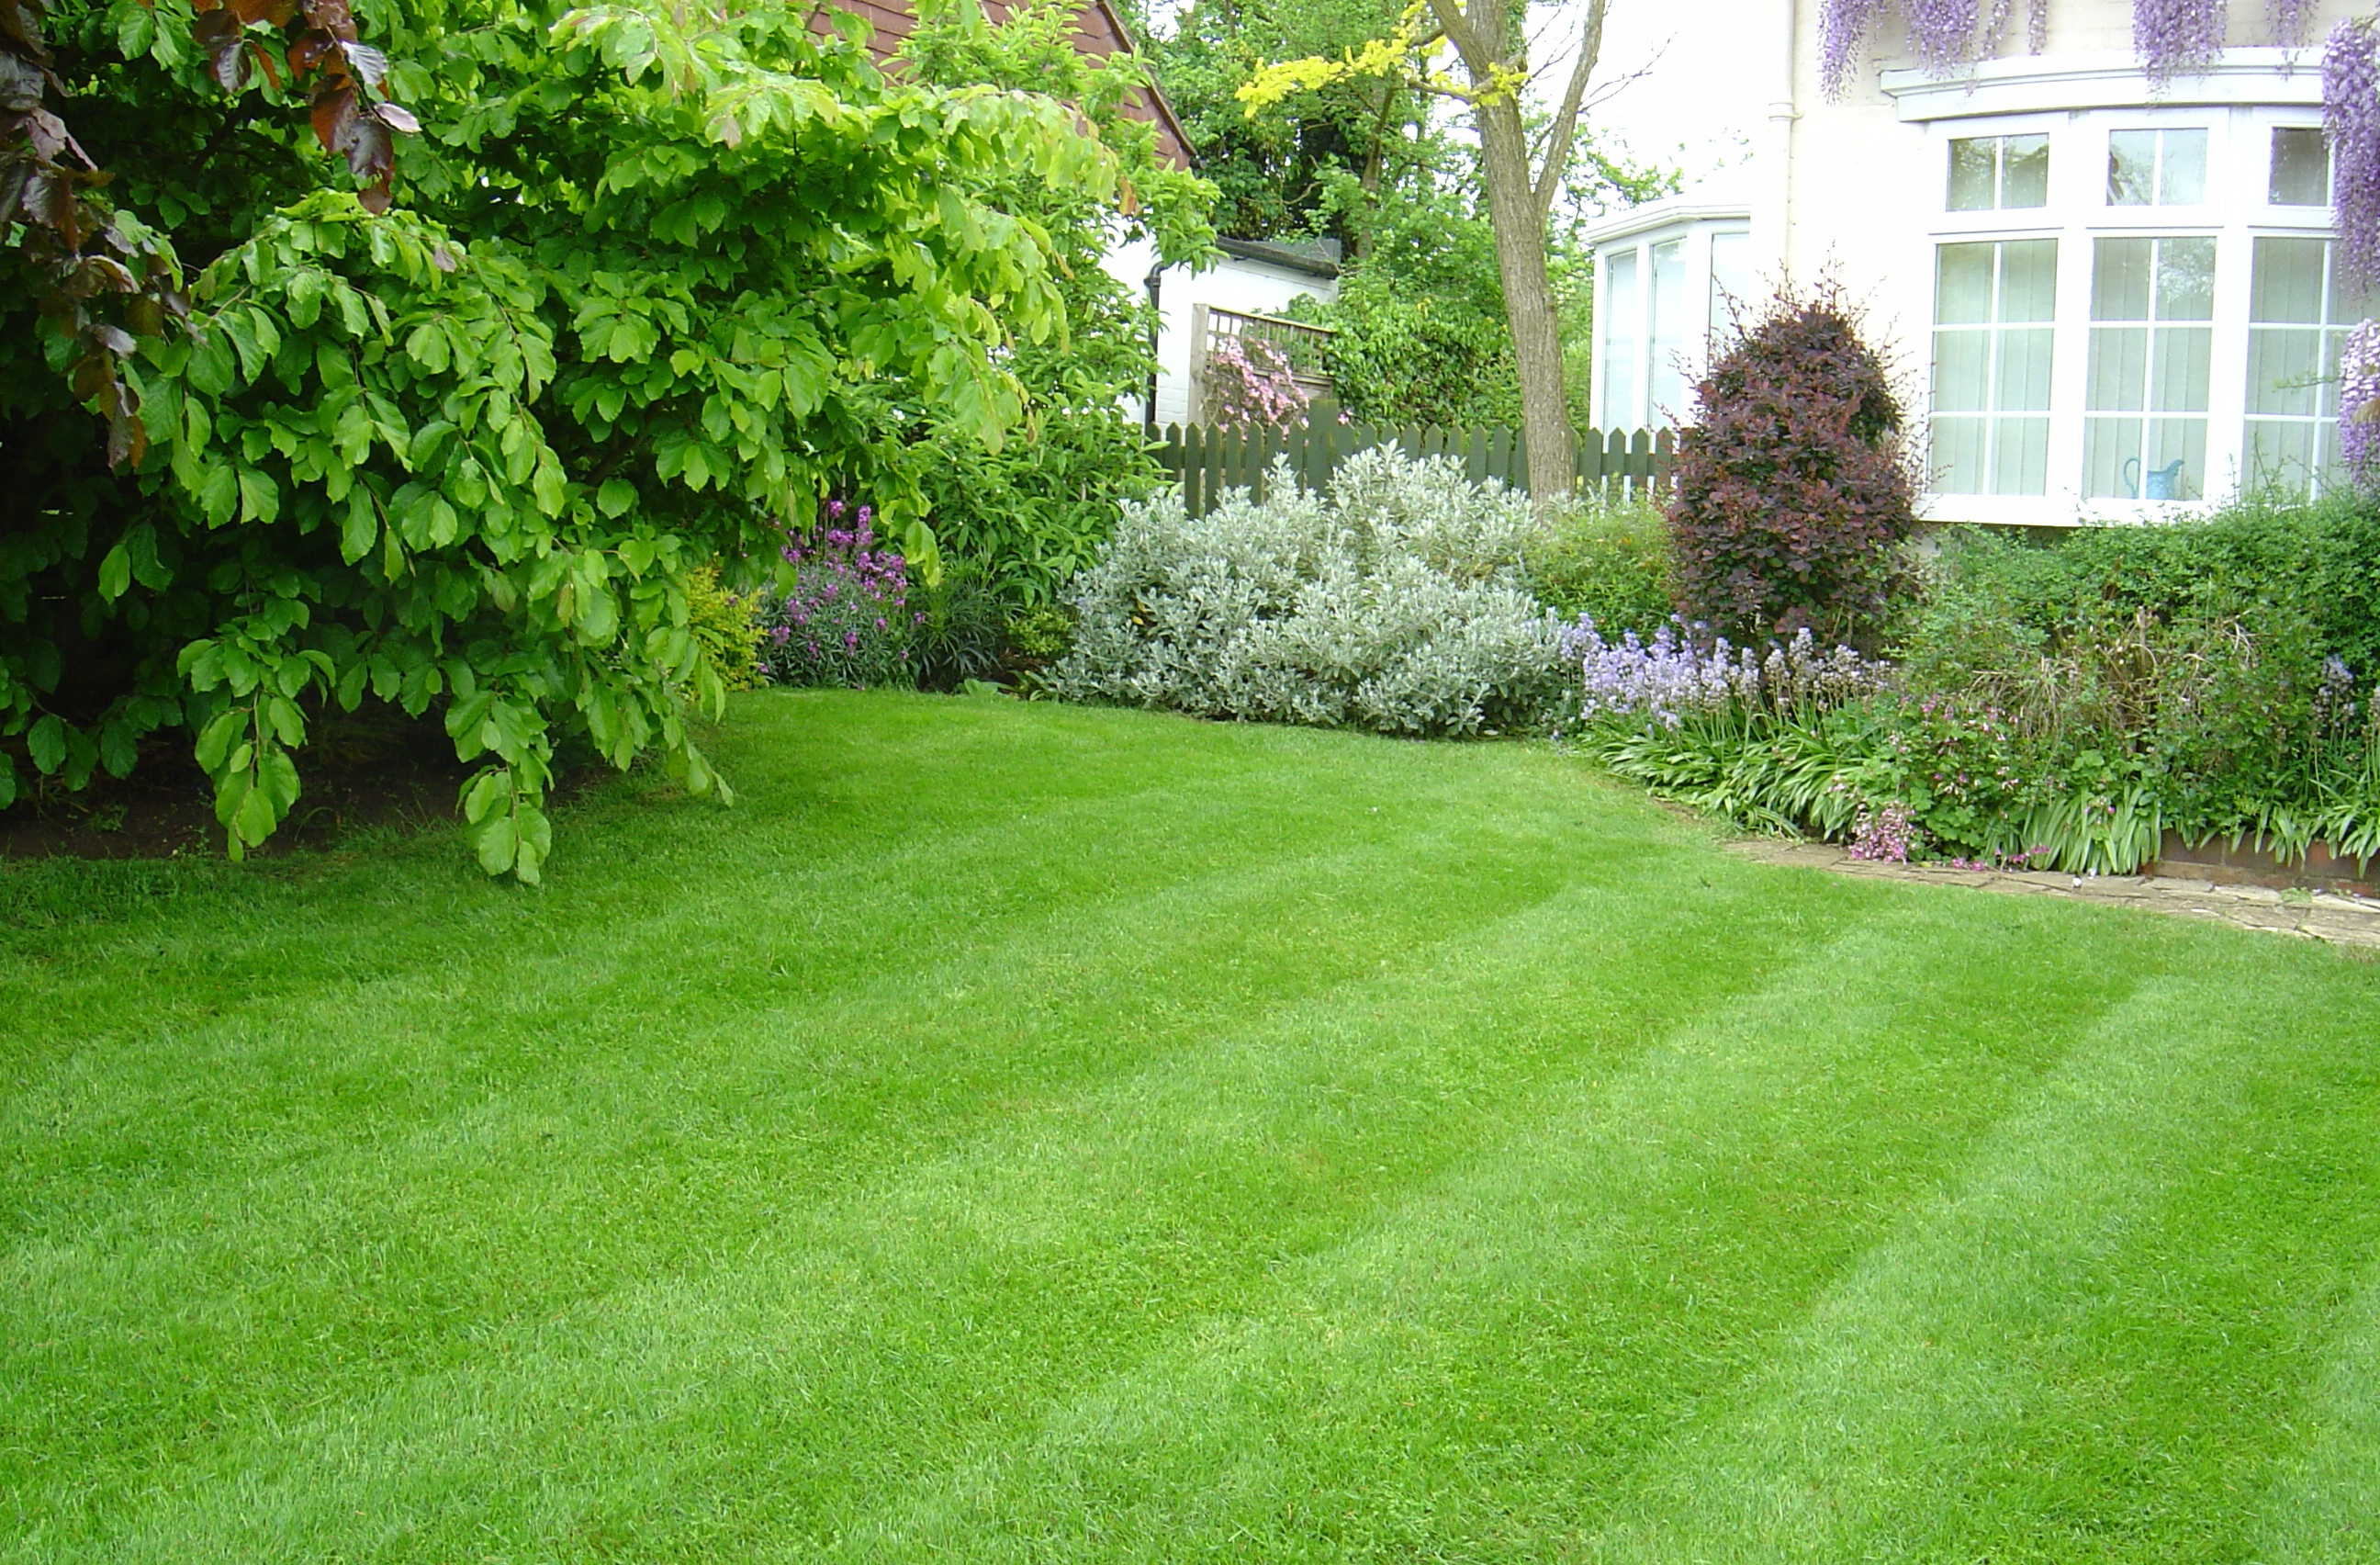 Lawn care vertopia gardens for Garden care